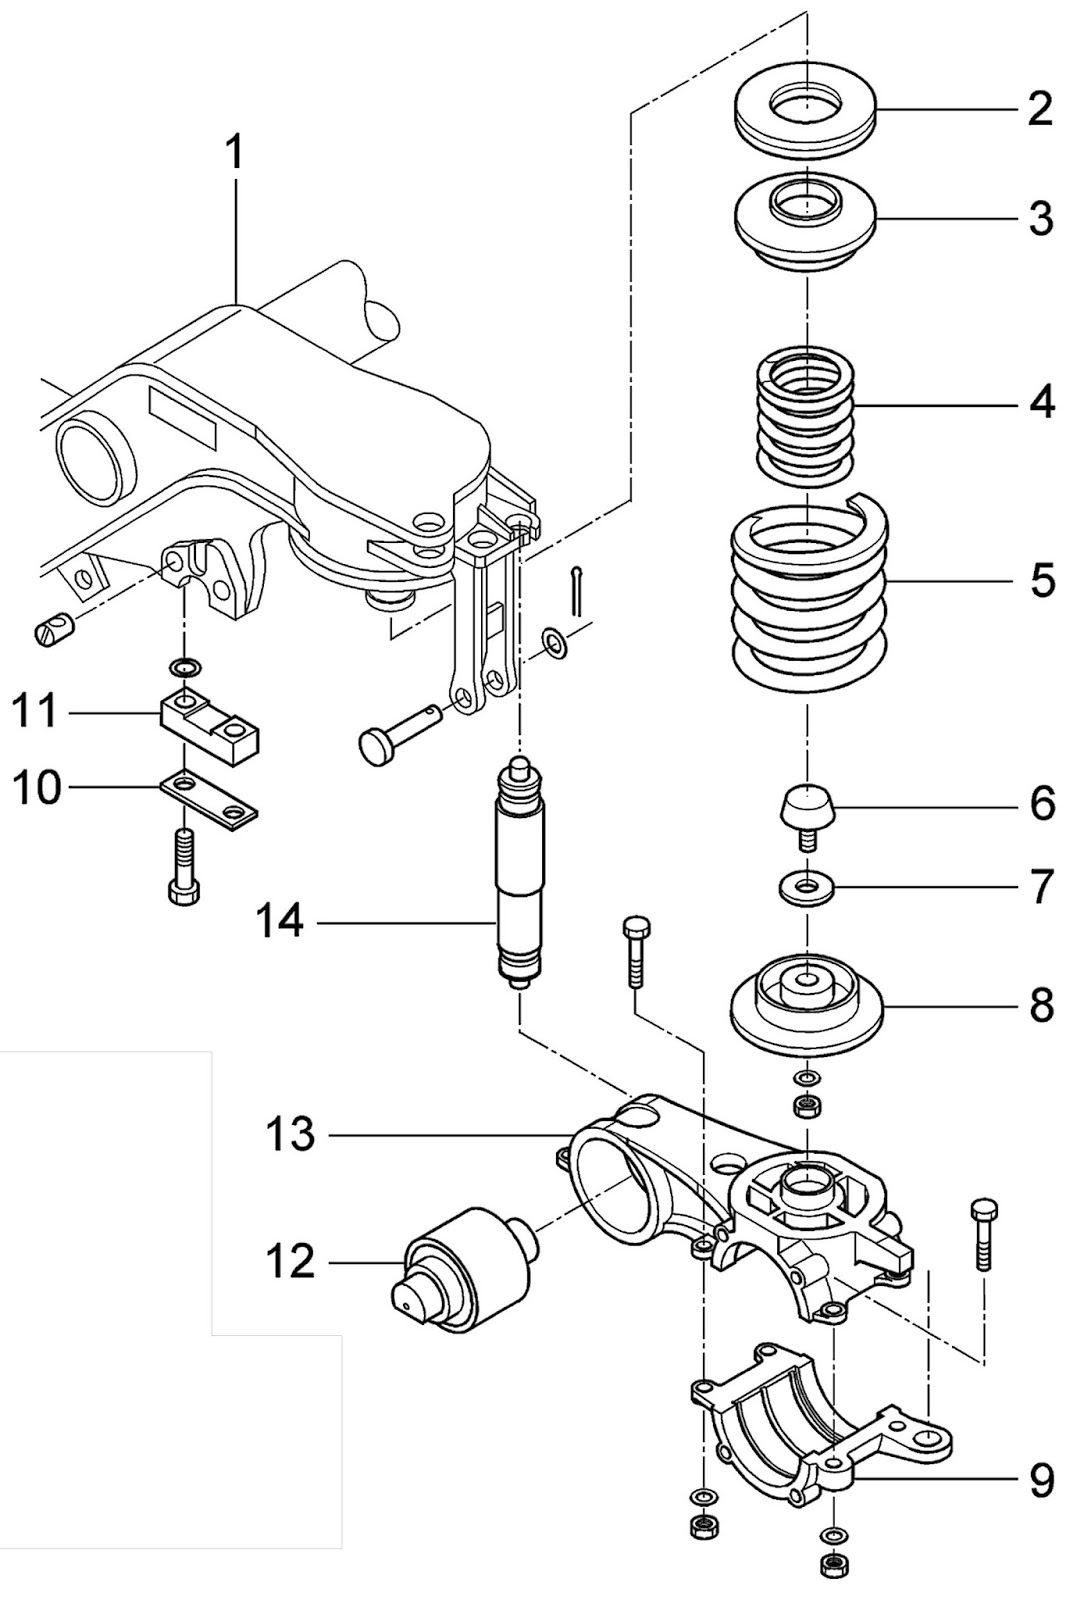 Lotus Elise Buyers Guide besides Lhb Fiat Bogie Detailed in addition Index cfm in addition 8581R08 Manual Steering Gear besides Front Suspension And Steering. on vehicle frame components